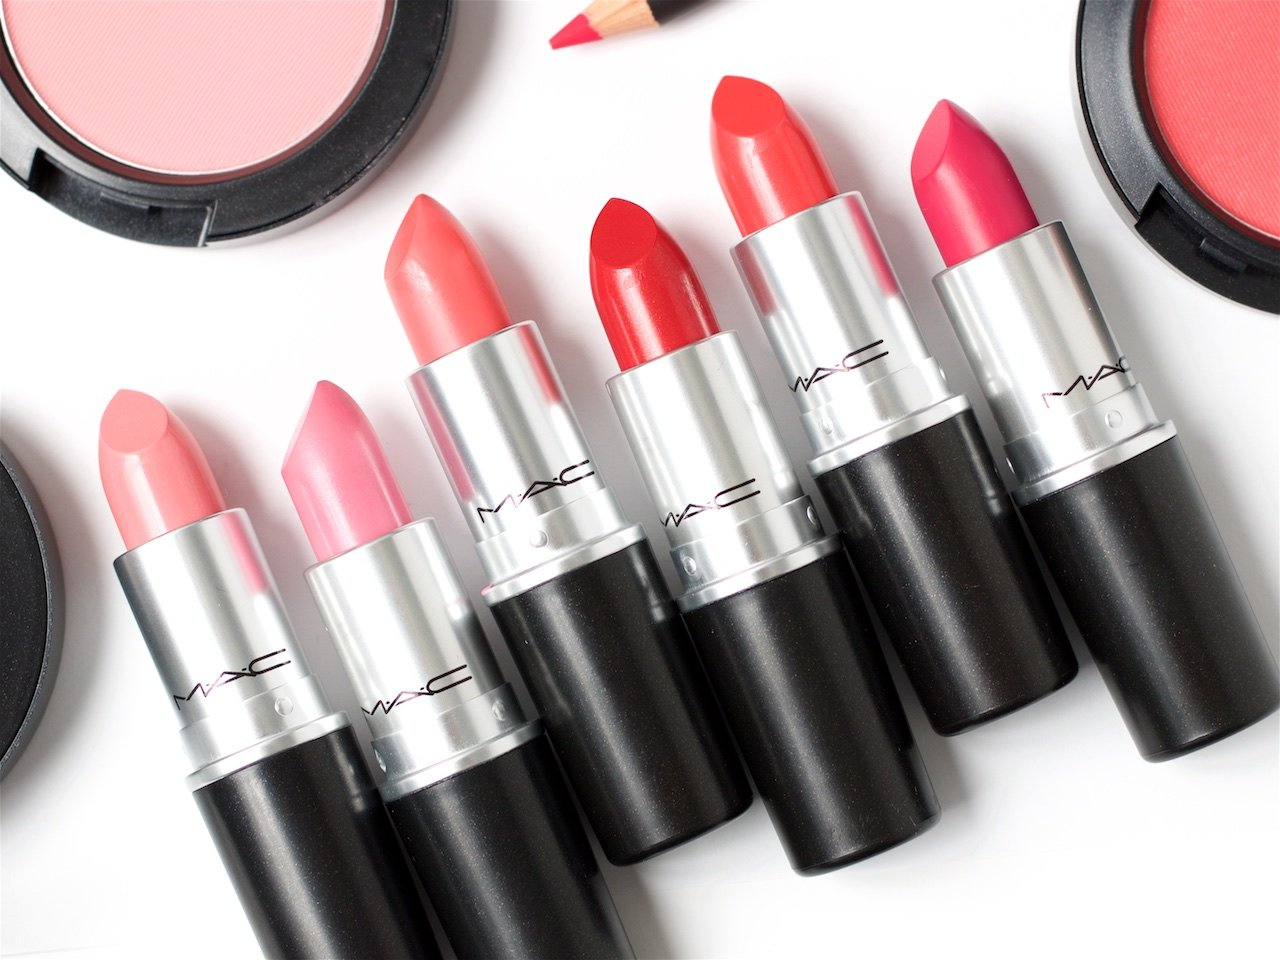 The Best Mac Lipsticks | Must have MAC Lipstick Colors